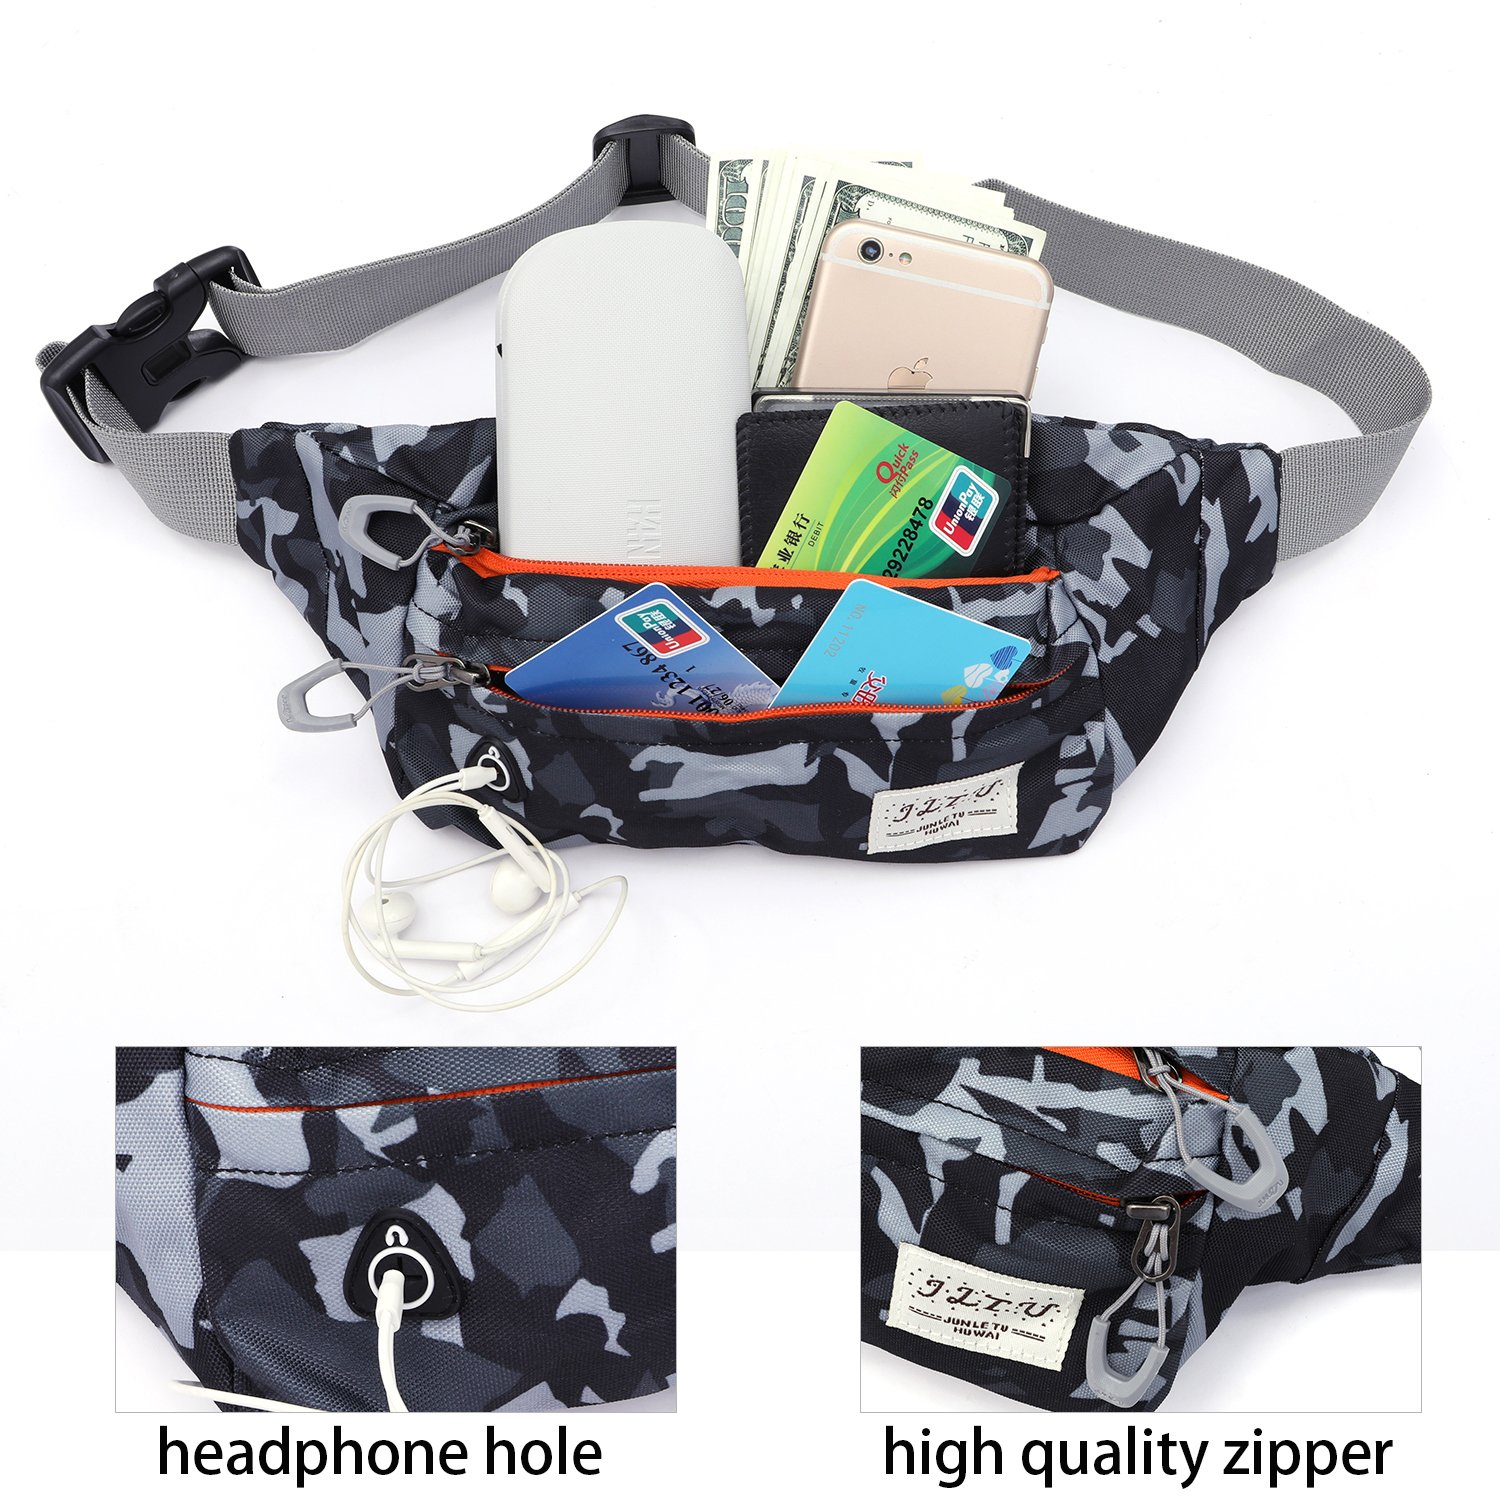 Exercise & Fitness Outdoor Fanny Pack Travel Fanny Bag Waist Pack Sling Pocket Super Lightweight for Travel Cashiers Box Camo Canvas Running Belt Waist Pack Hiking Camping Fishing Waist Bag